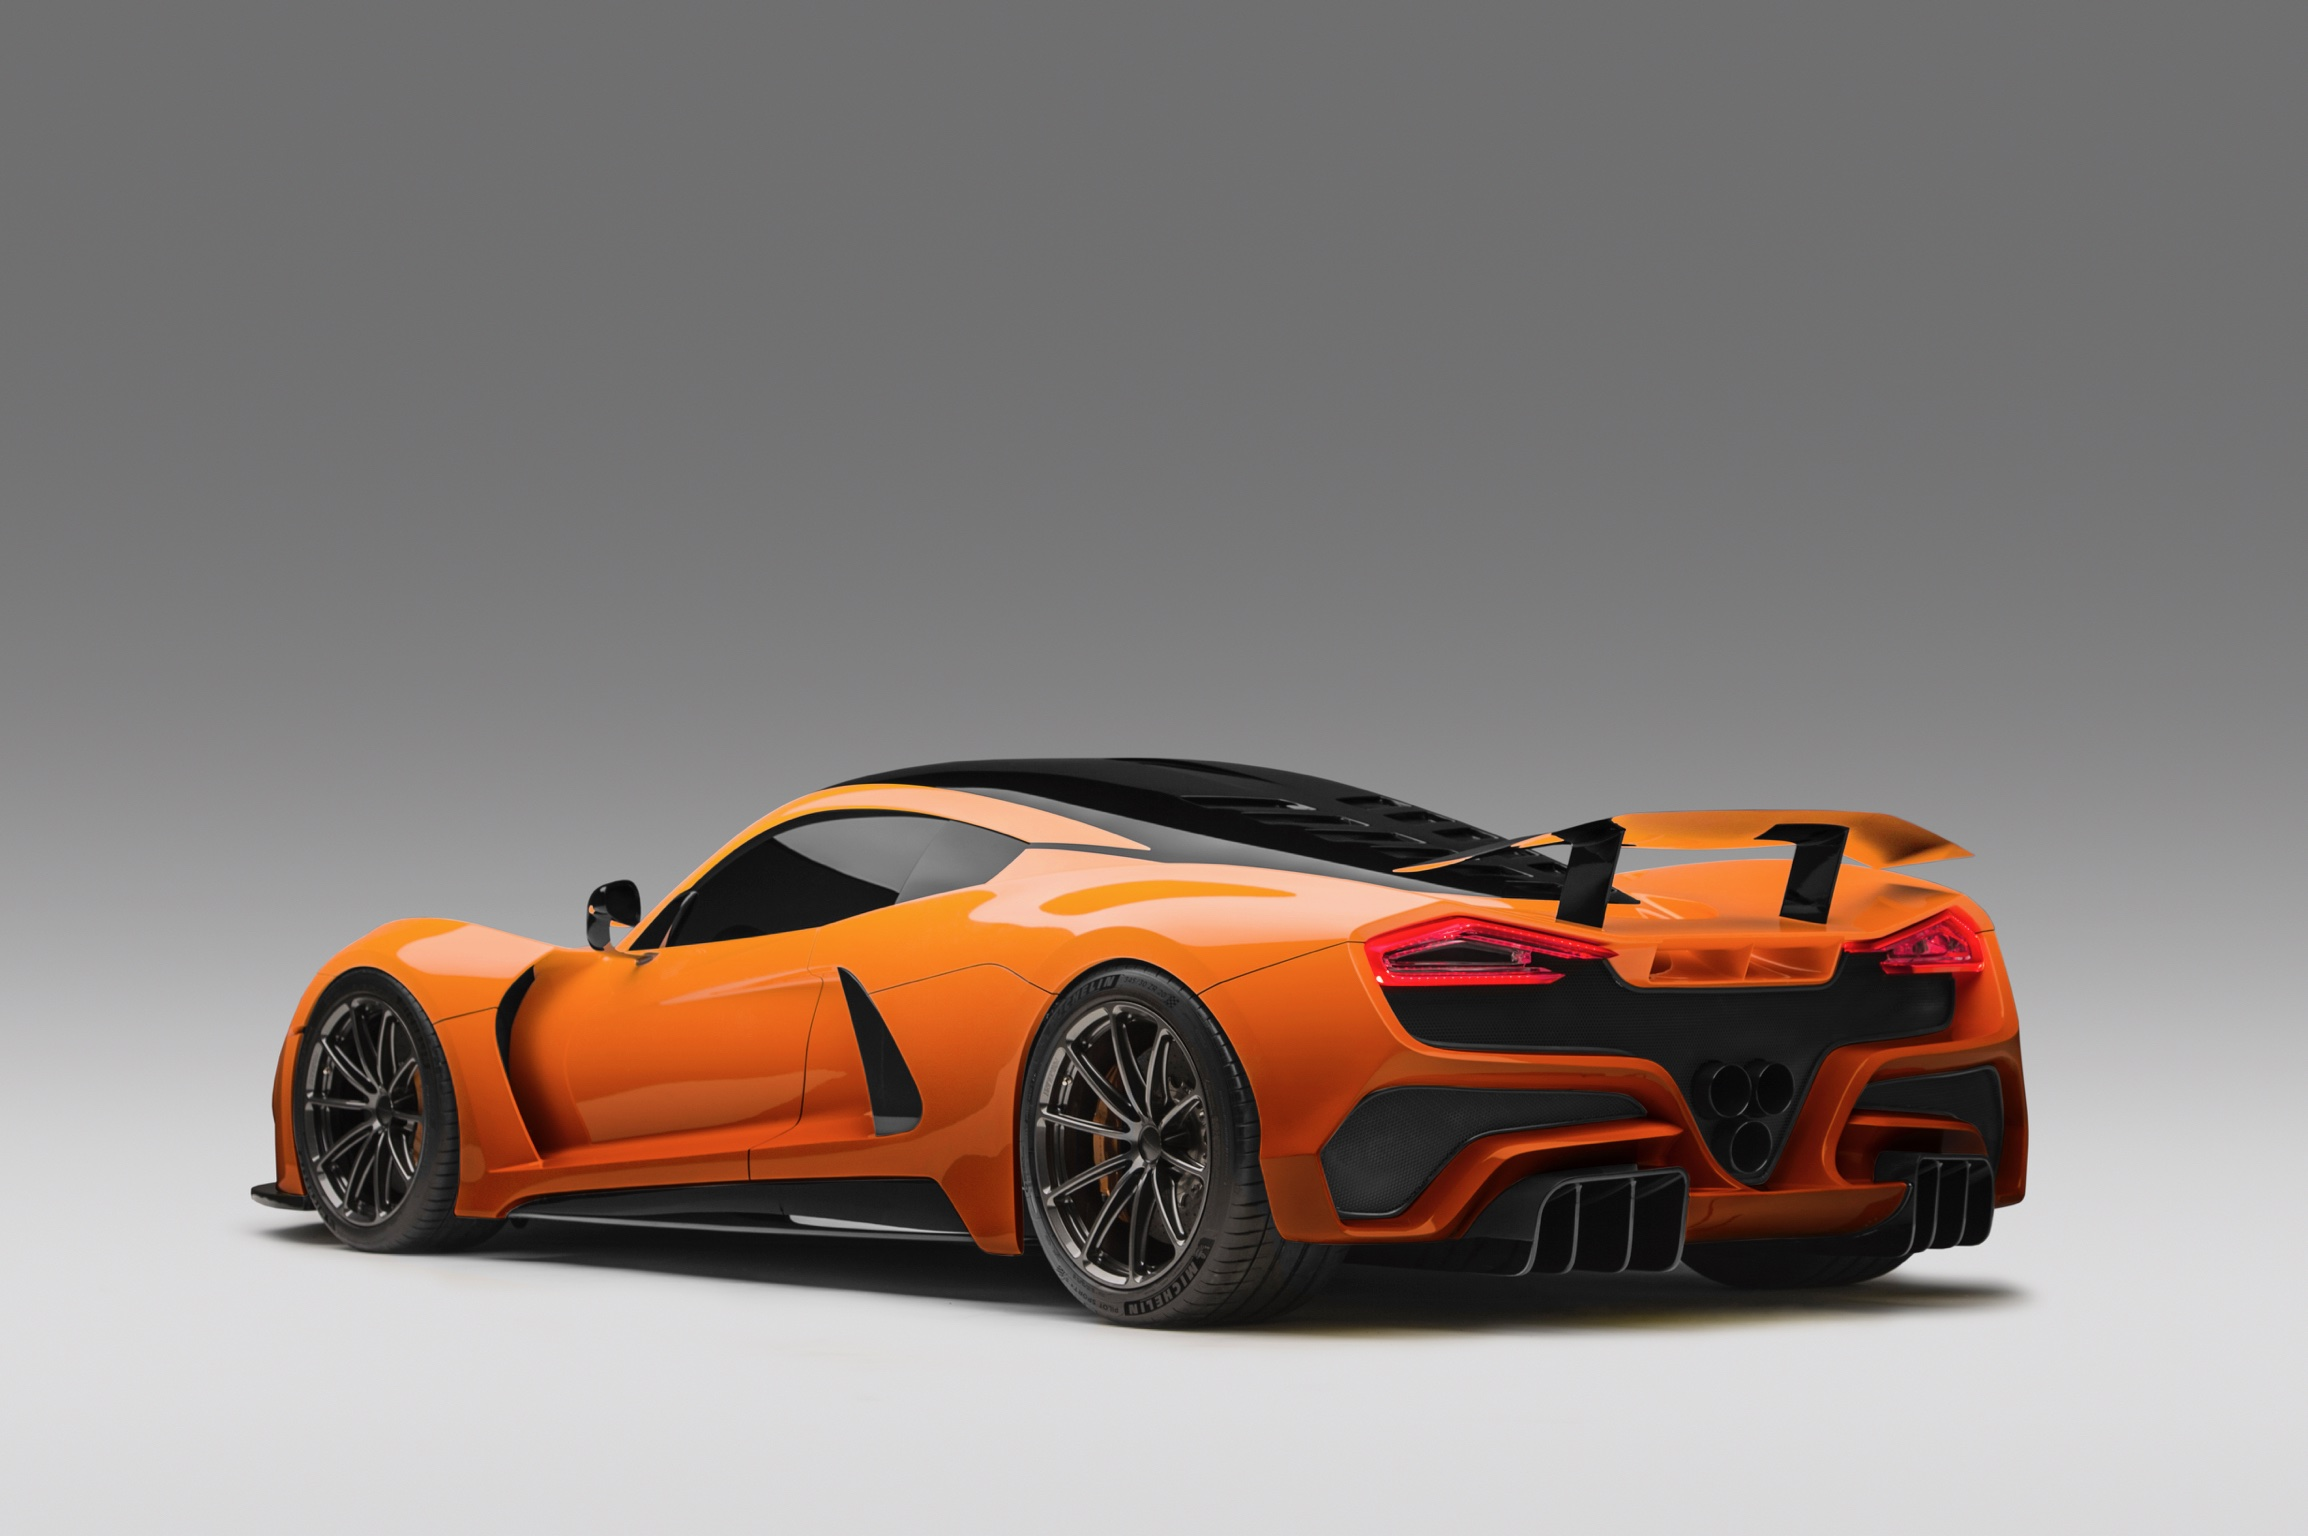 Hennessey Venom F5 in Orange Metallic Rear